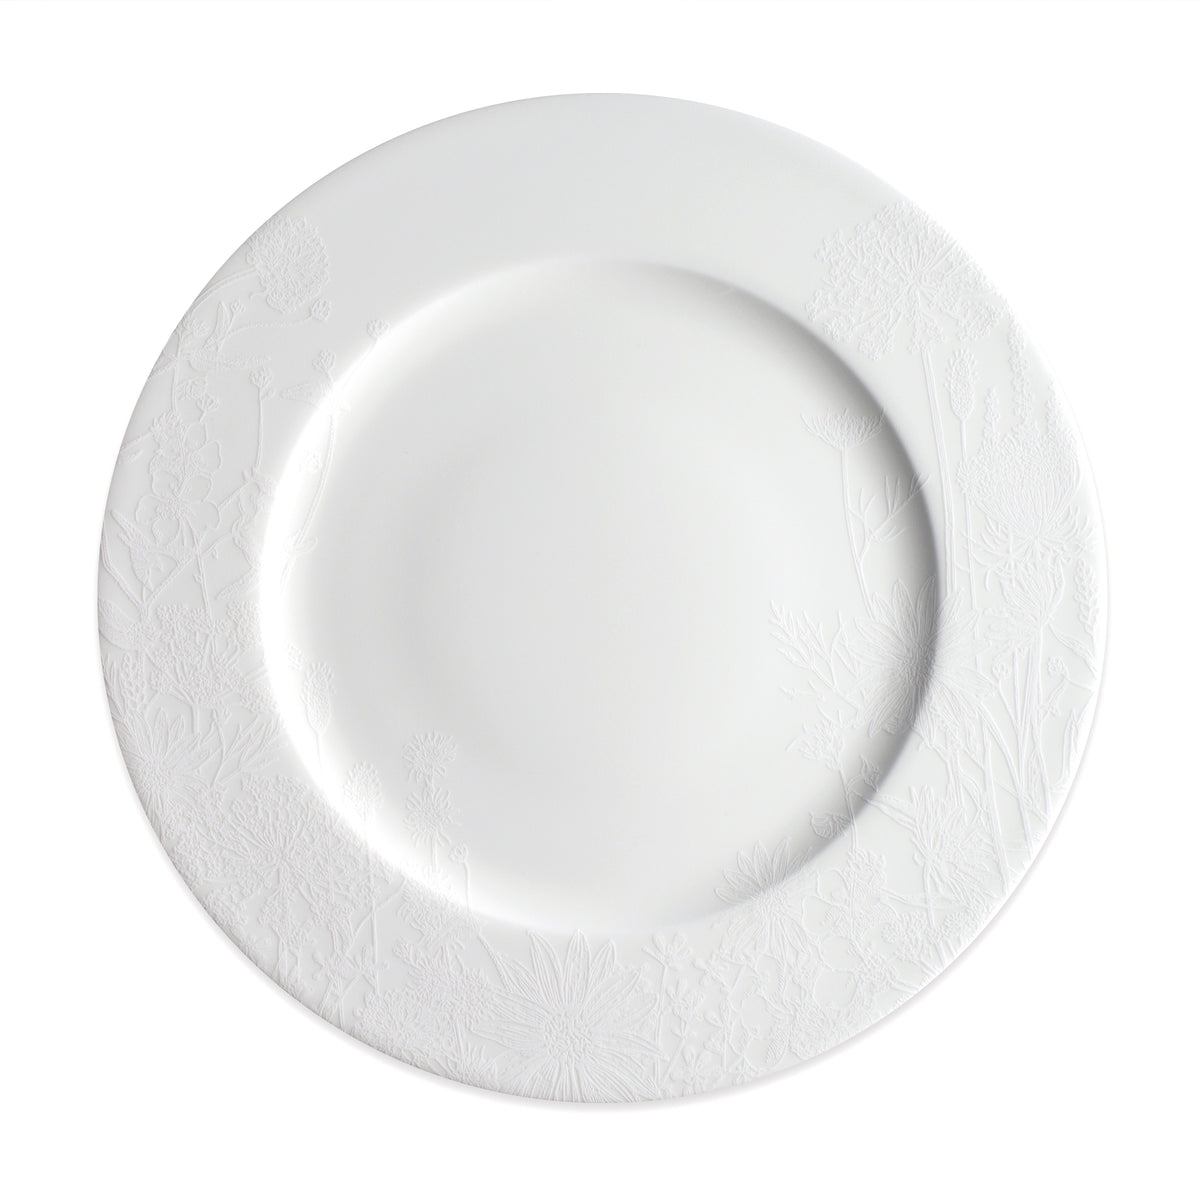 "Summer 10.75"" Rimmed Dinner - WHITE - Caskata"